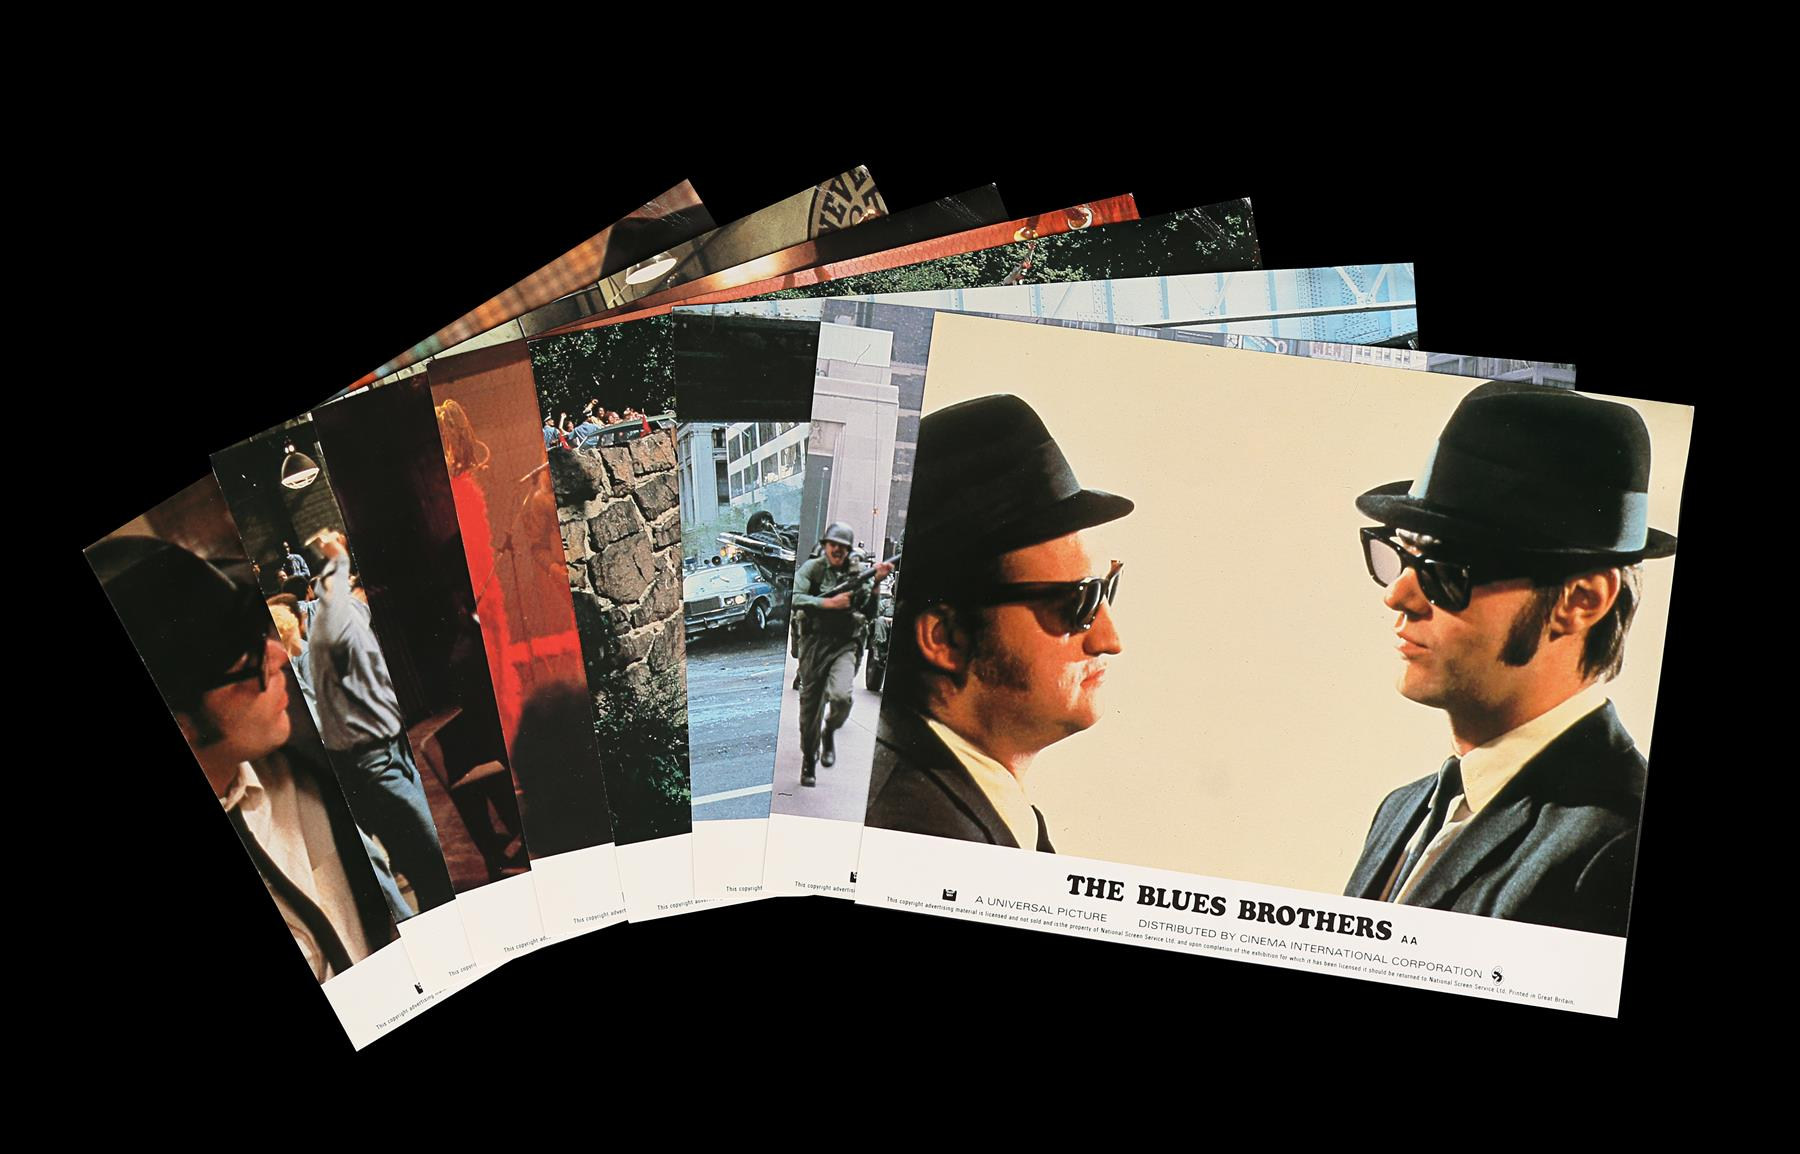 THE BLUES BROTHERS (1980) - Eight British Front of House Lobby Cards, 1980